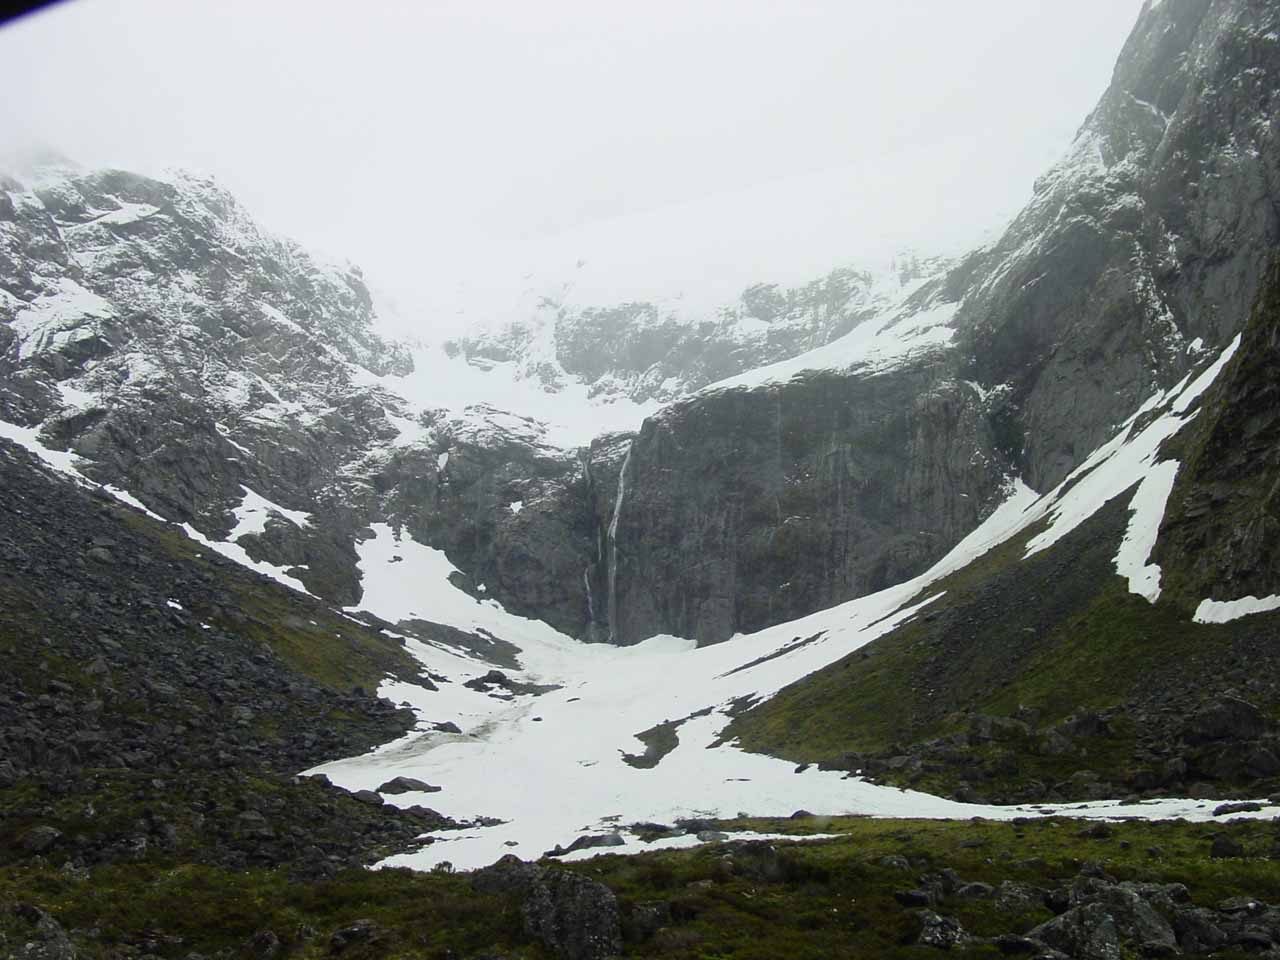 Looking towards a wall near the Homer Tunnel